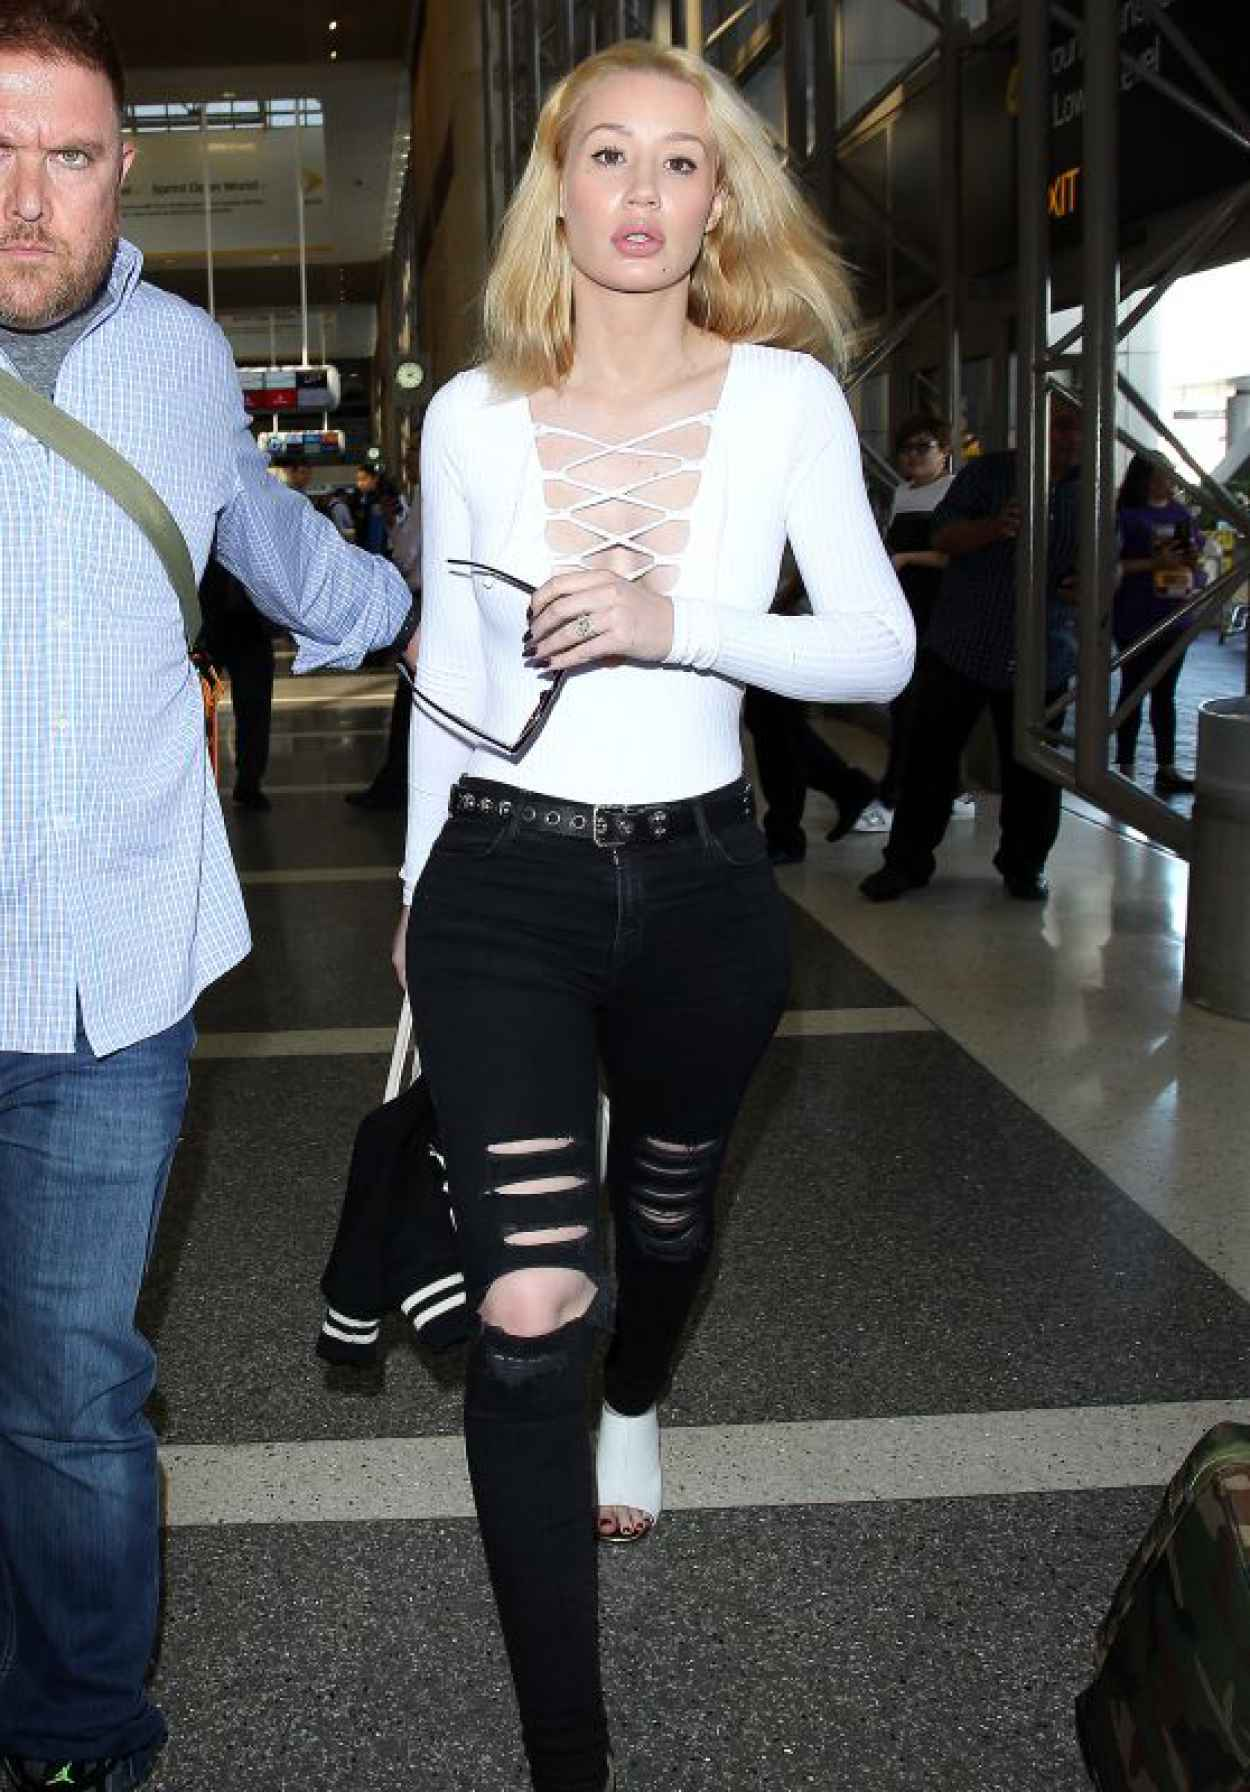 Iggy Azalea - Departing on a Flight at LAX Airport in LA, October 2015-1